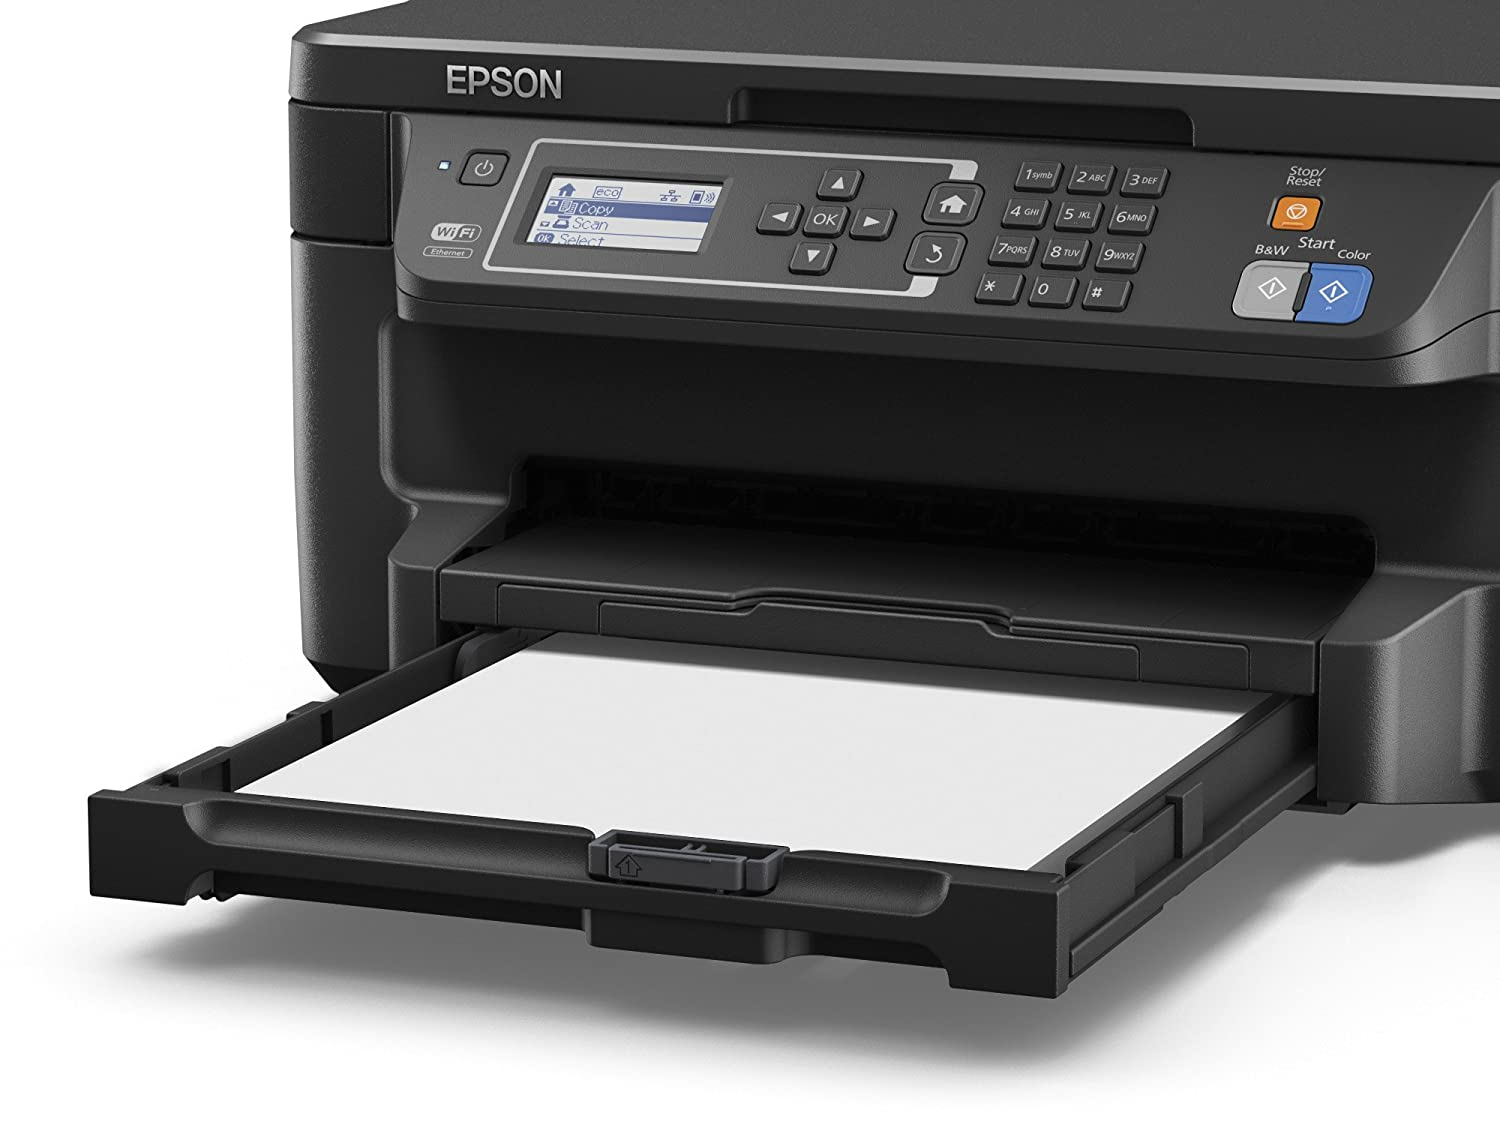 Amazon.com: Epson Et-3600 1200x2400dpi 33ppm 48mb a4 prnt ...